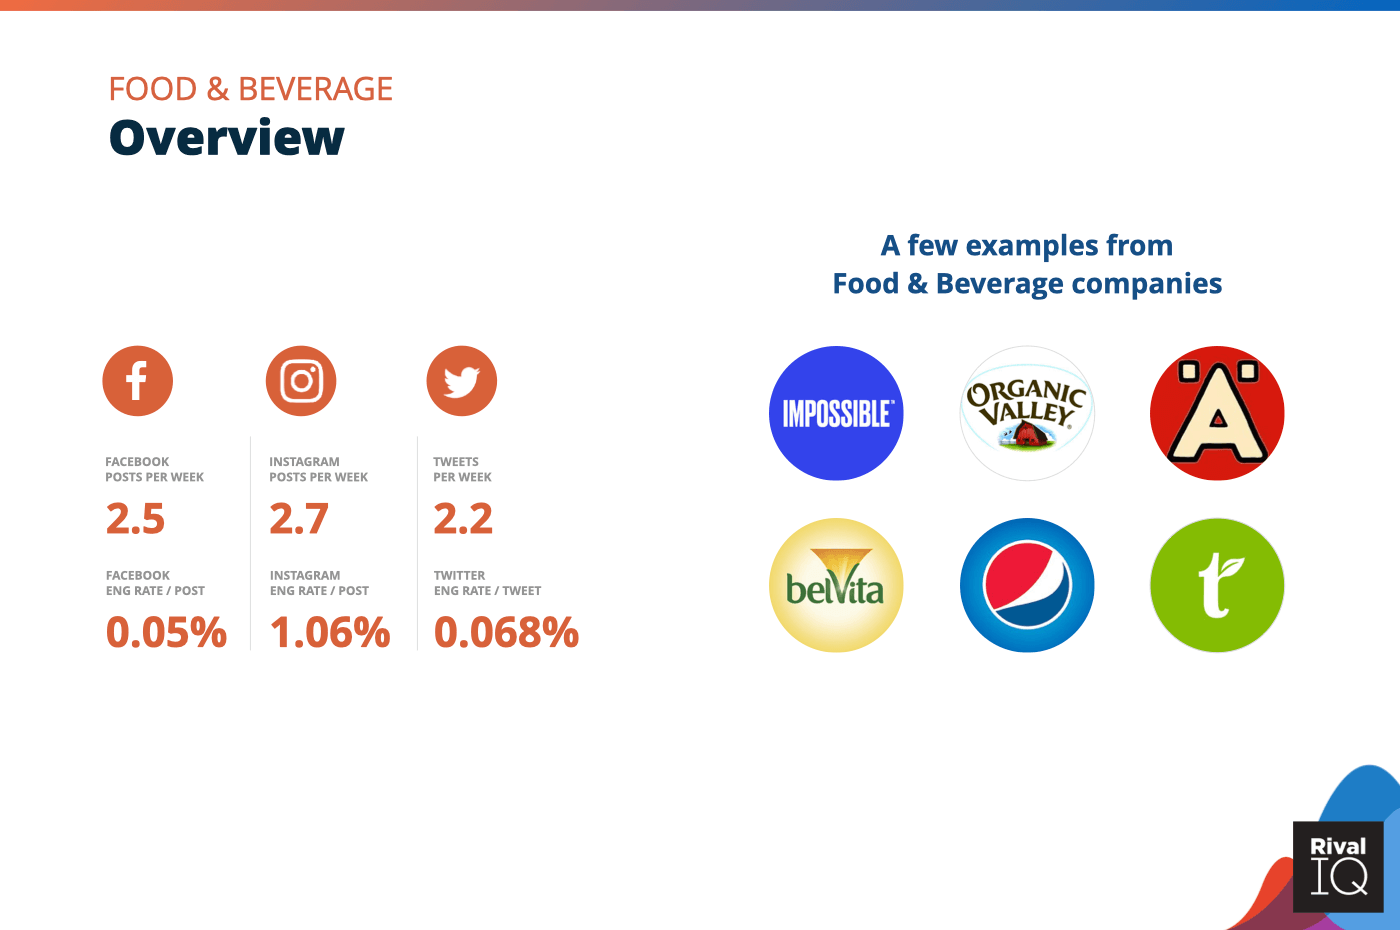 Overview of all benchmarks, Food & Beverage